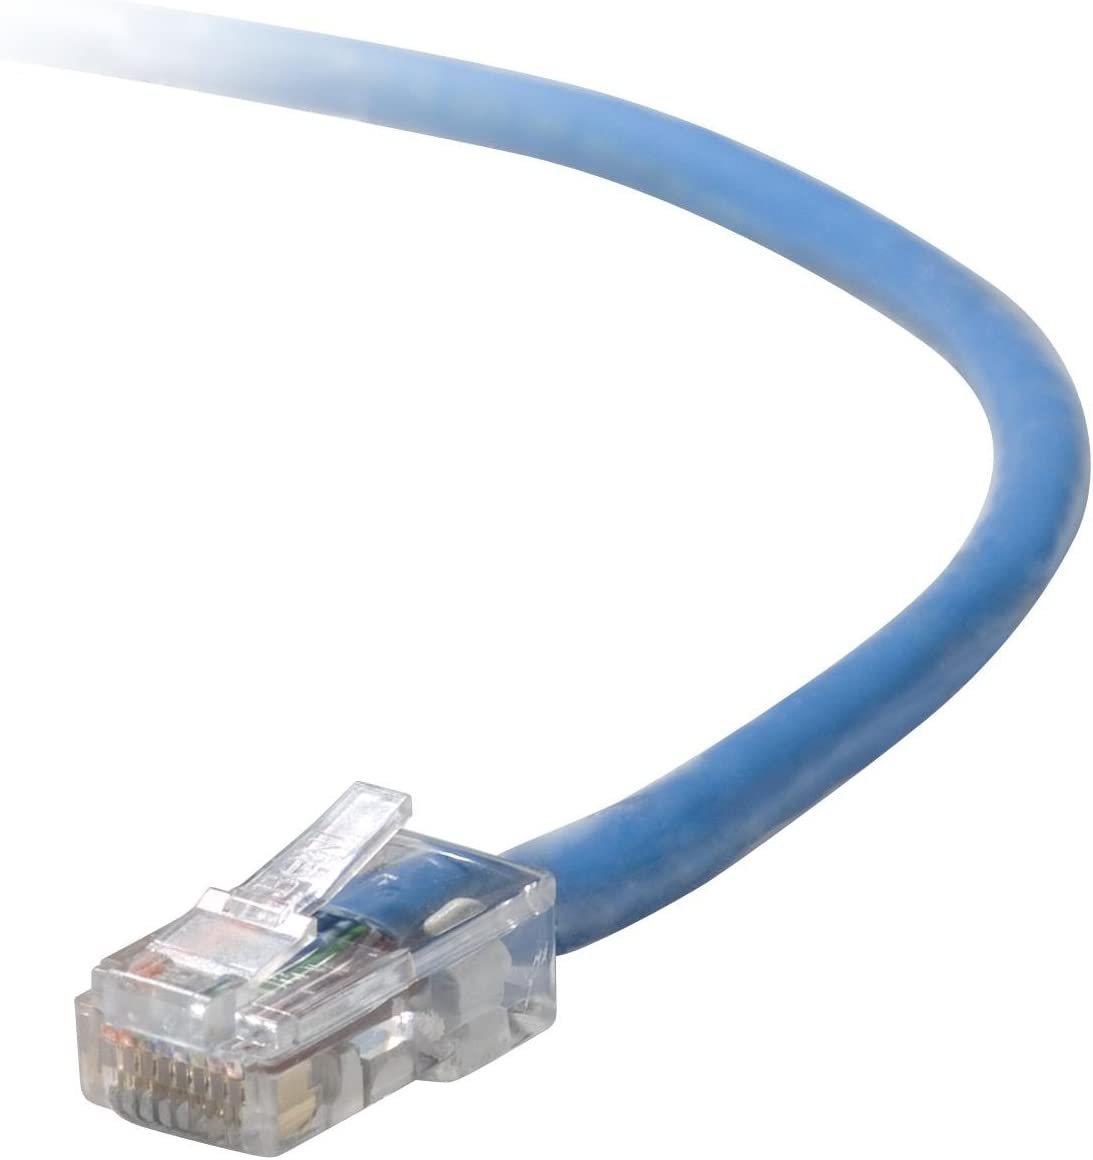 SMB 1x8 B2B RJ-45 Belkin A3L791-05-BLU Patch cable - RJ-45 M M CAT 5e blue for Omniview SMB 1x16 UTP OmniView IP 5000HQ OmniView SMB CAT5 KVM Switch - 5 ft